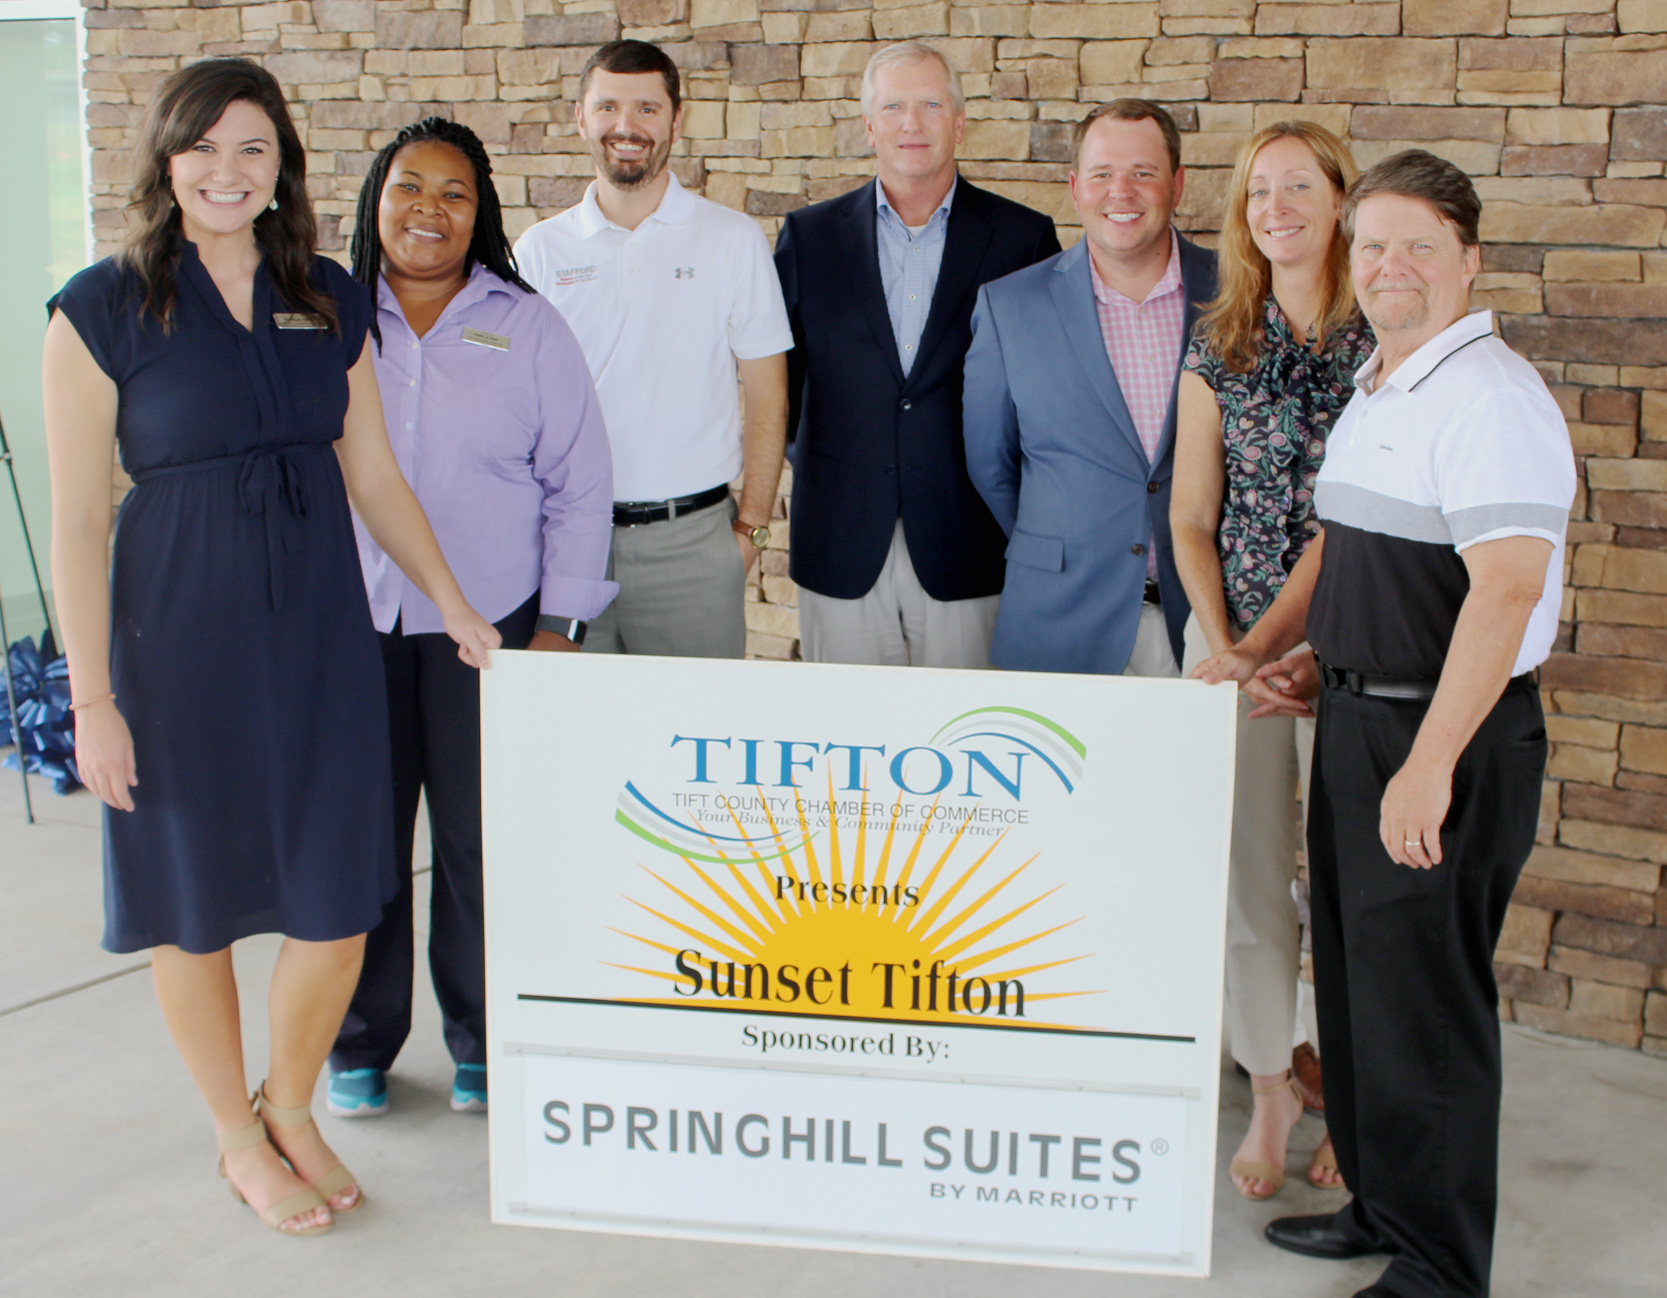 Sunset Tifton – Springhill Suites 060619